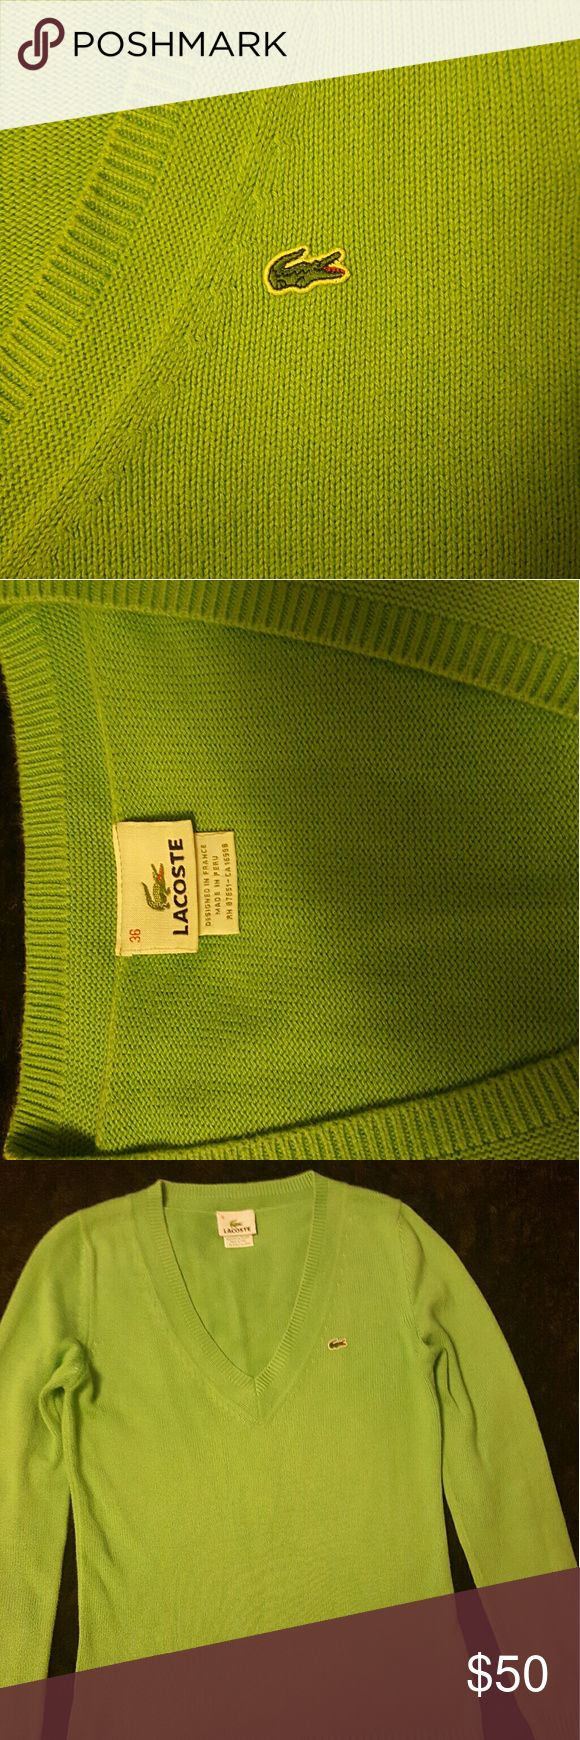 Lacoste Cotton sweater Women's Lacoste sweater in great condition. Picture looks bright green but is more of a pistachio color. Lacoste size 36 equivalent to a size 4. 100% cotton. Lacoste Sweaters V-Necks